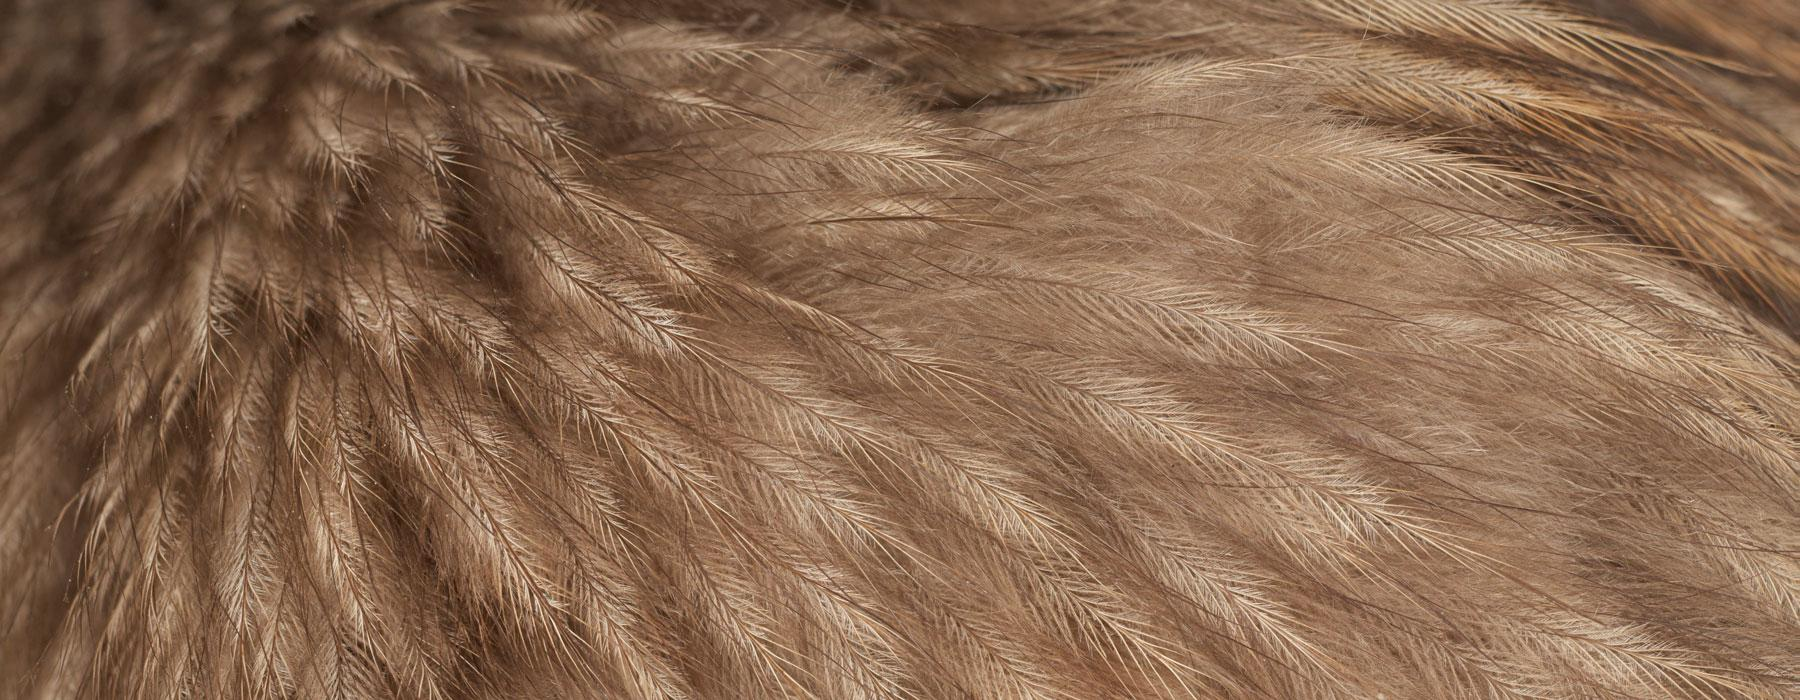 Close-up of brown feathers